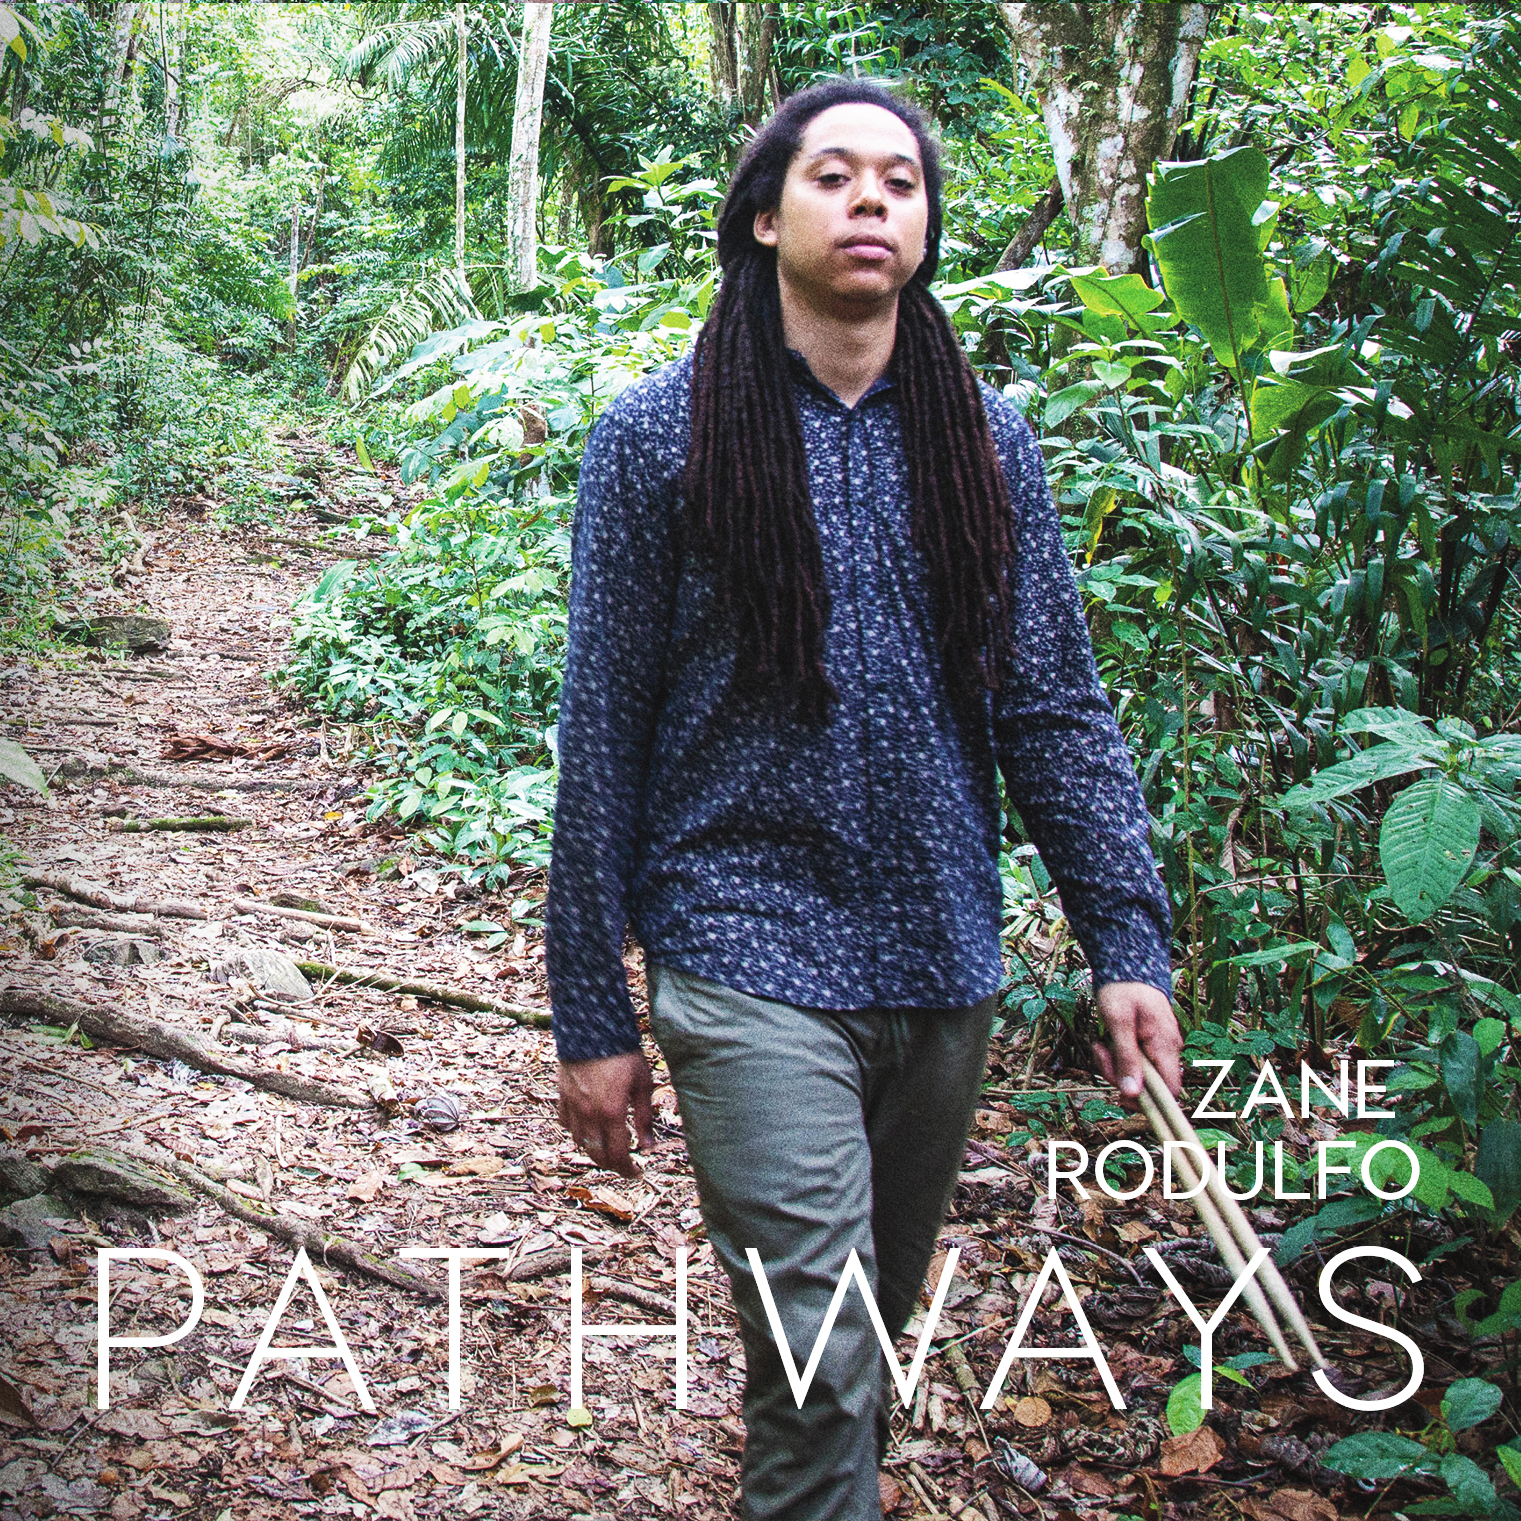 Zane Rodulfo's 'Pathways' is Reviewed by the Jazz Owl